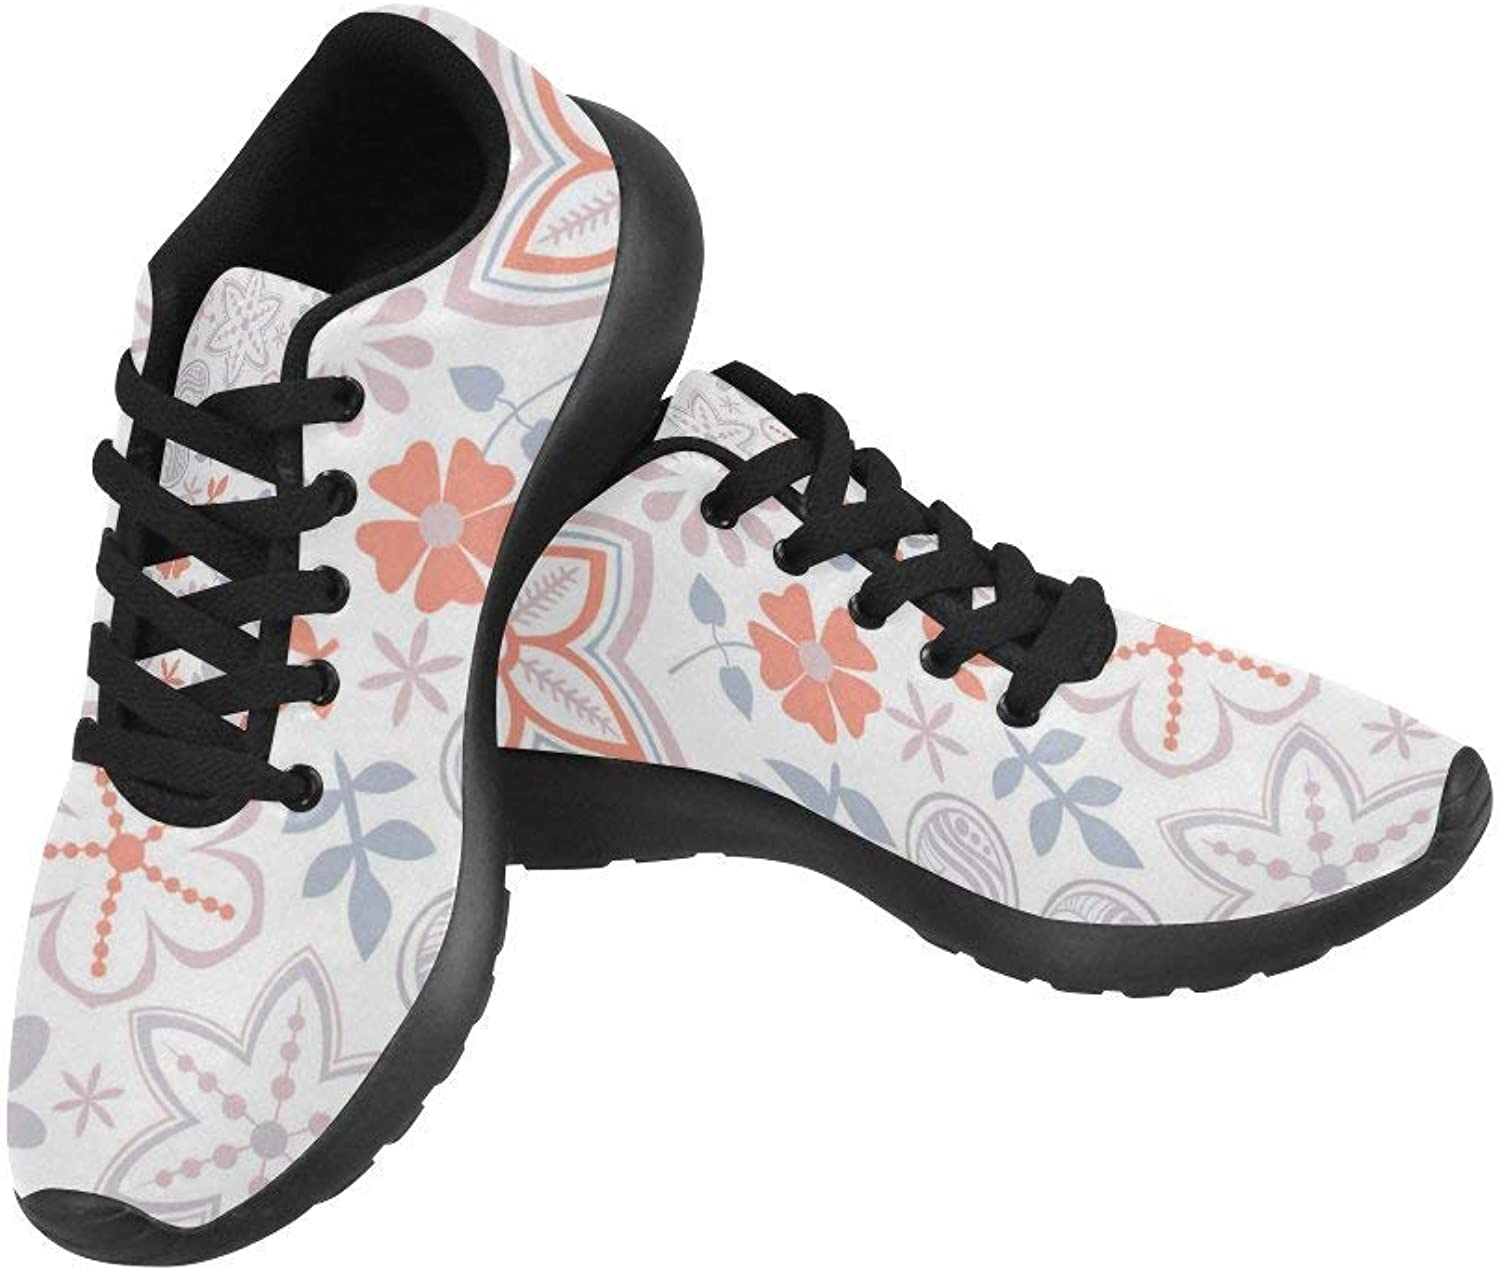 InterestPrint Bright Flowers Print on Women's Running shoes Casual Lightweight Athletic Sneakers US Size 6-15